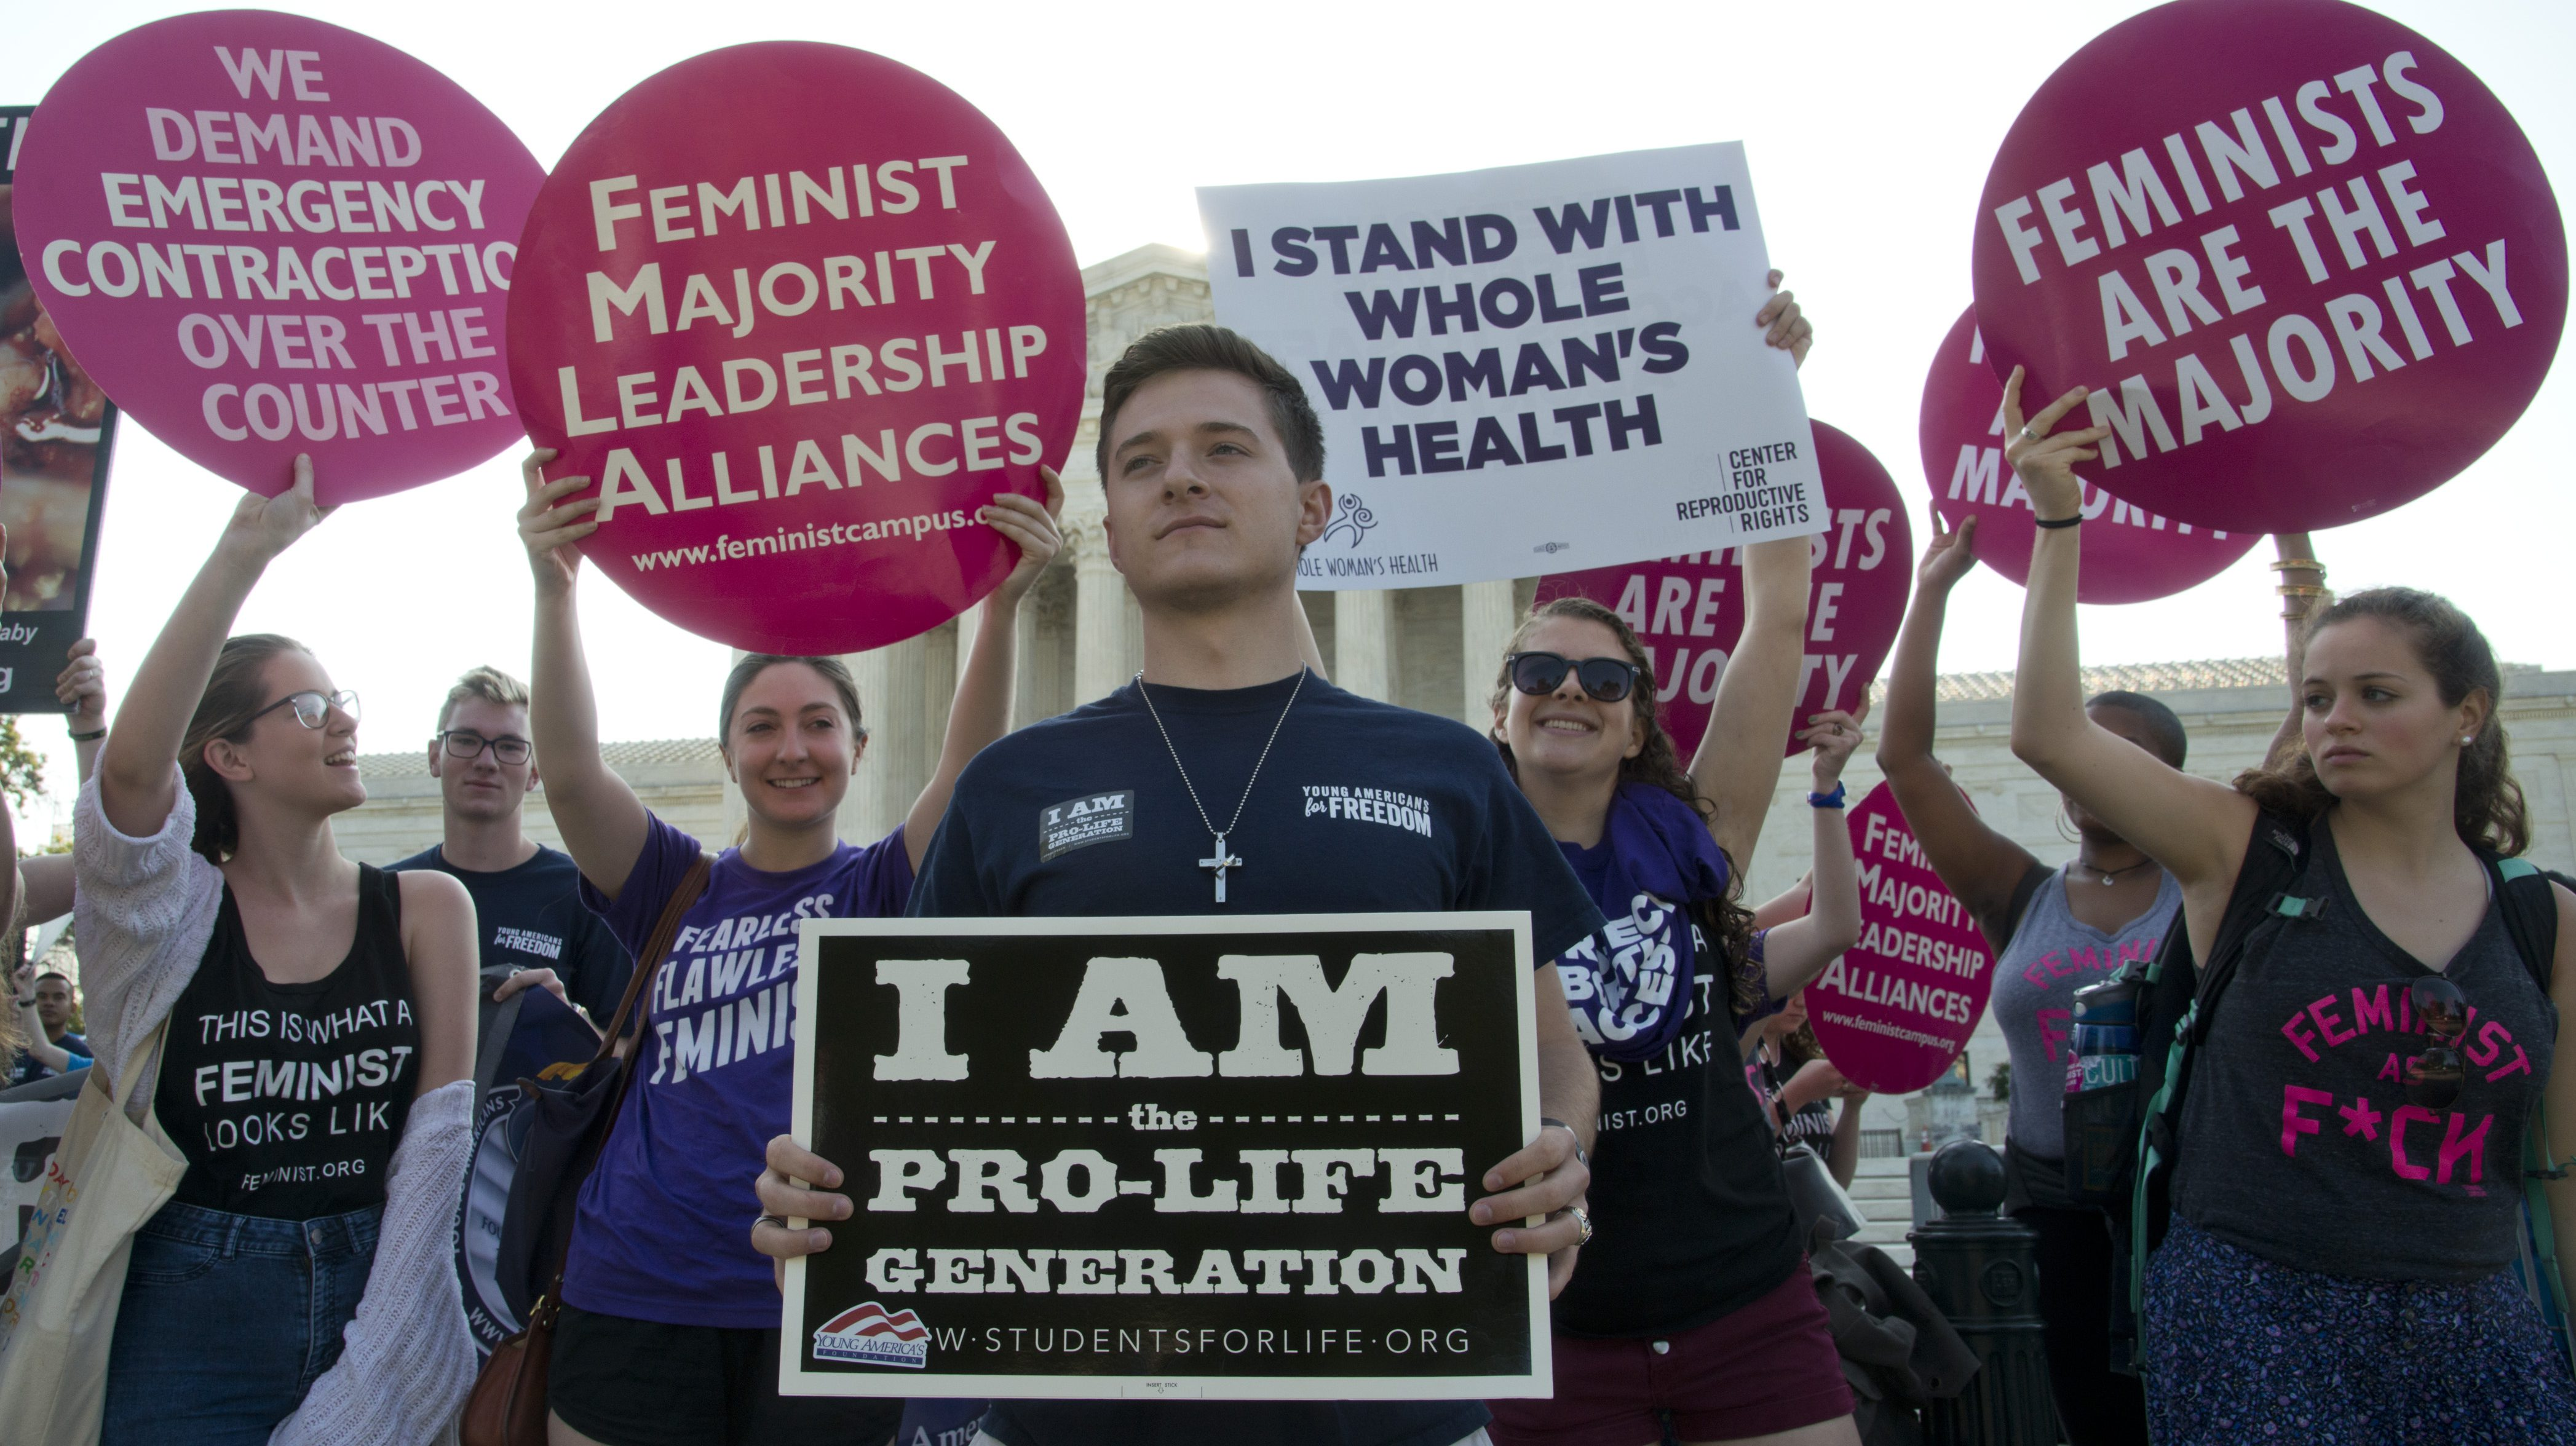 Washington, DC, June 27, 2016, USA-Pr0-Life and Pro-Choice advocates protest at the Supreme Court in Washington DC in anticipation of the Supreme Court 's ruling on free access to abortion.Credit: Patsy Lynch/MediaPunch/IPX